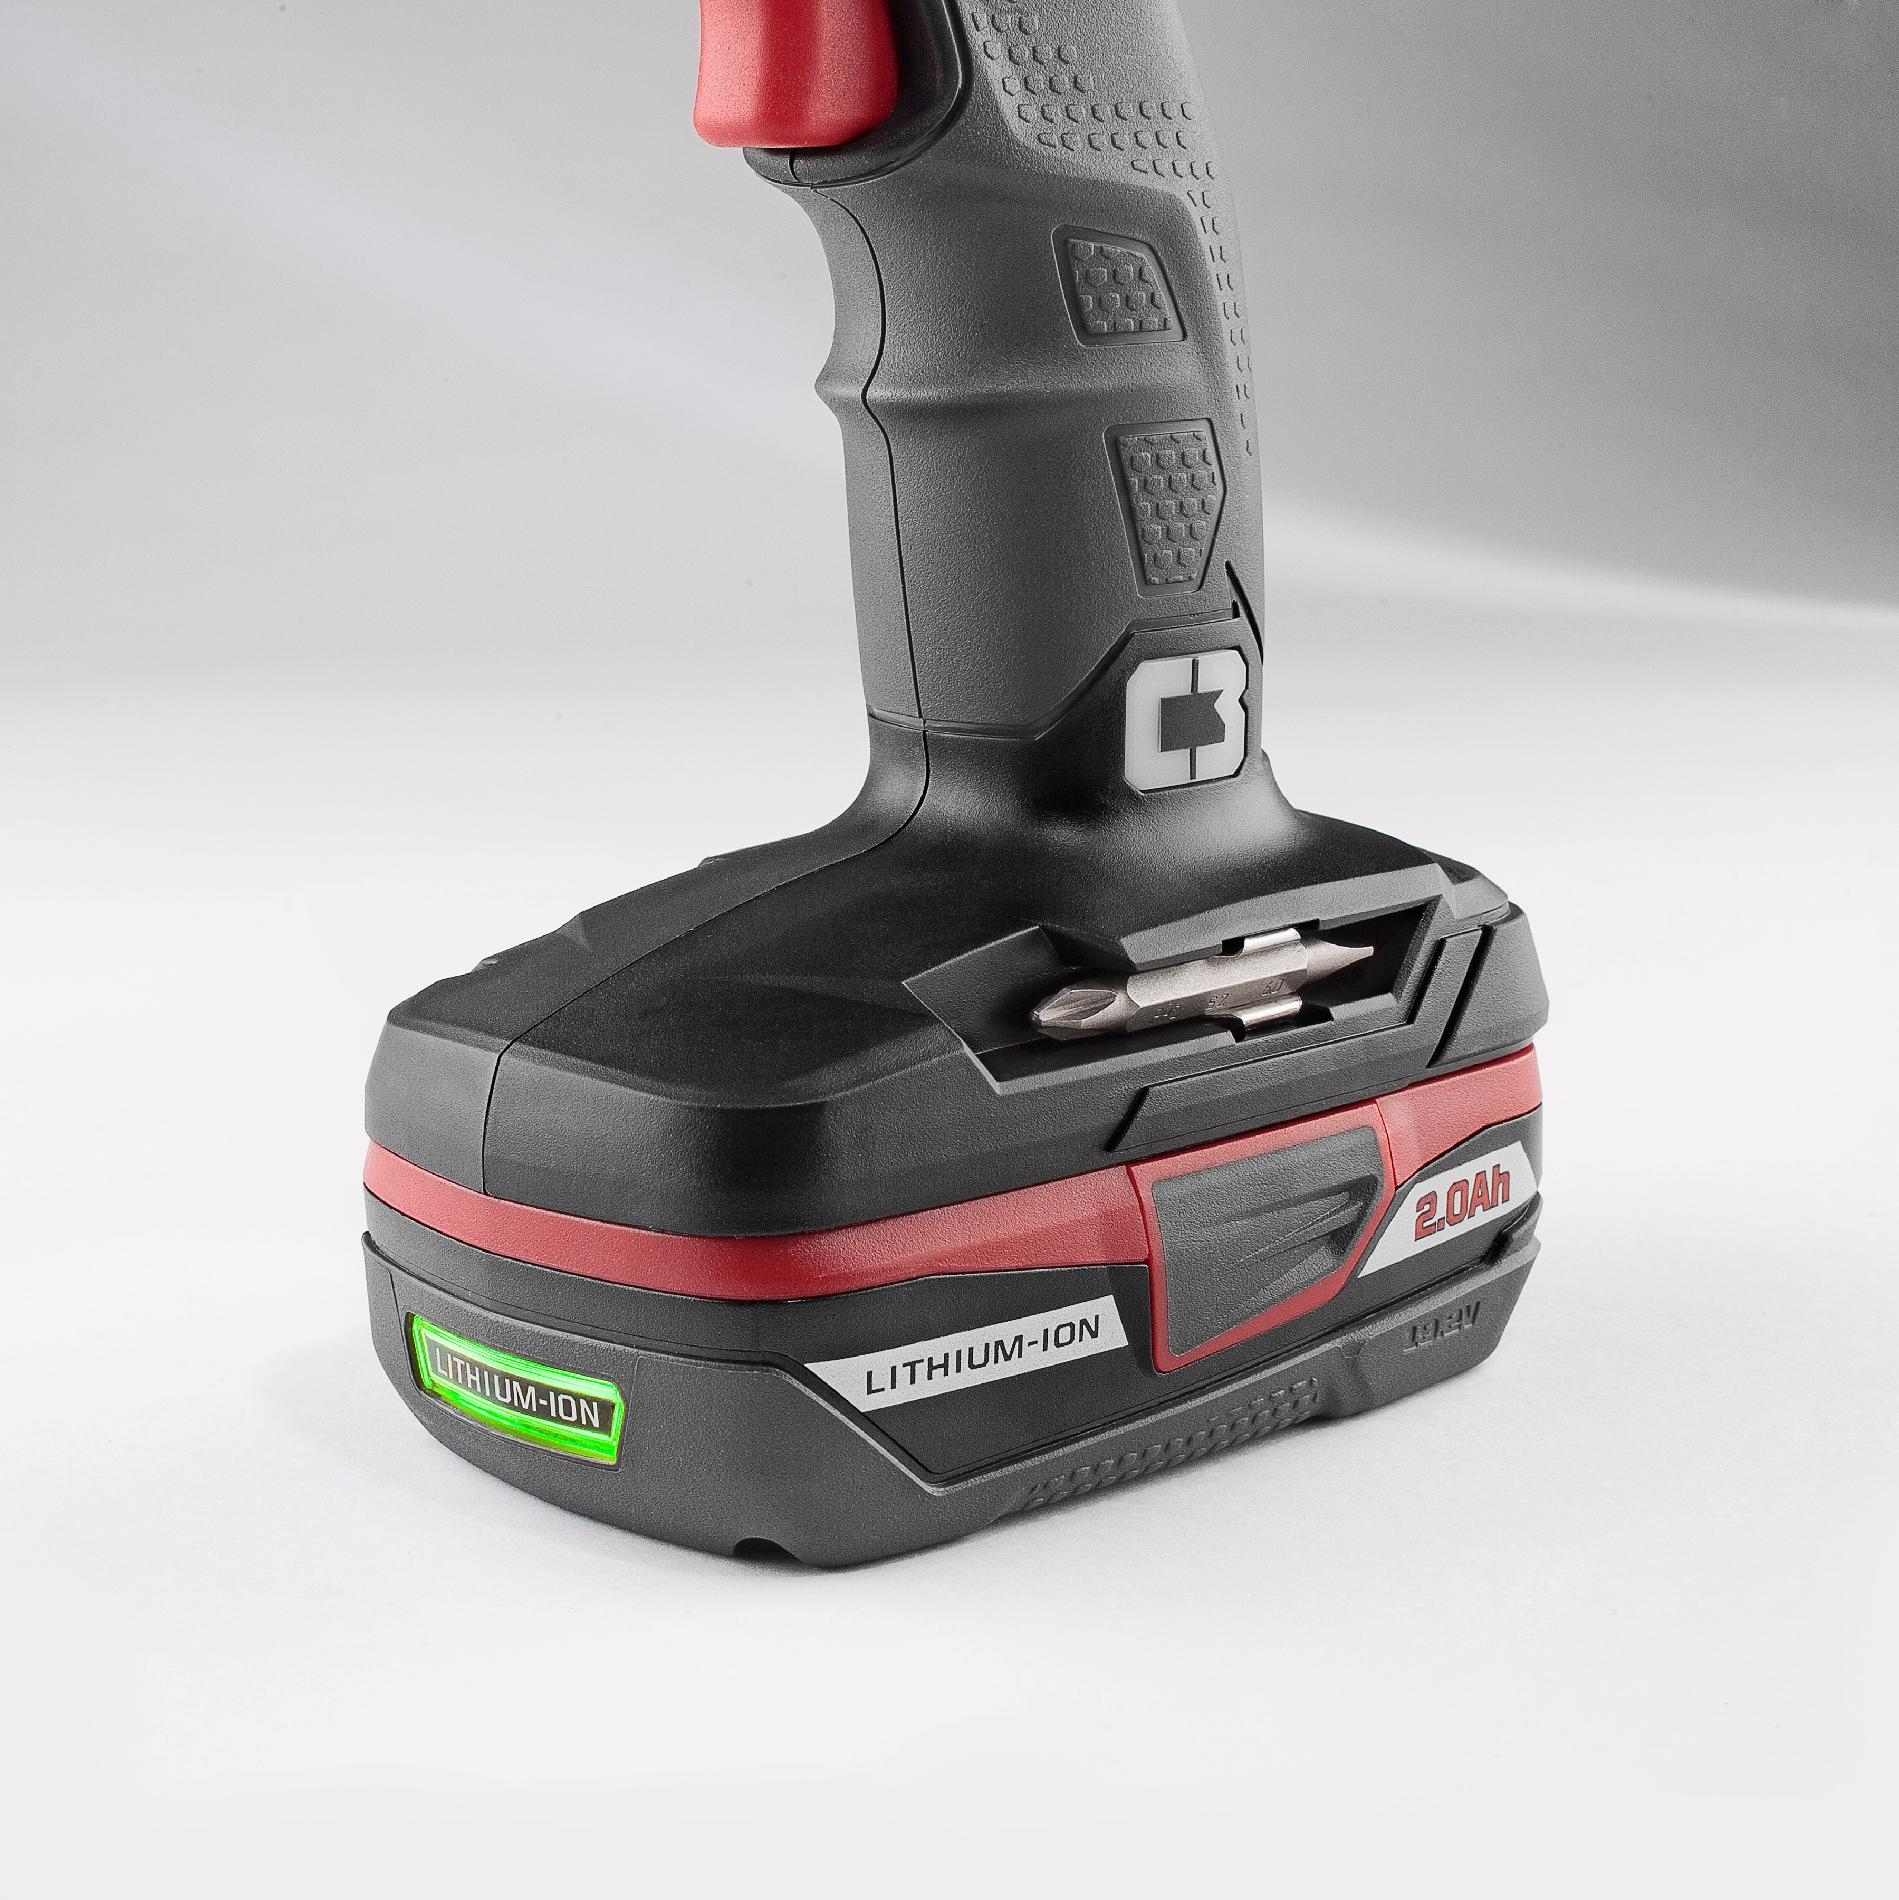 Craftsman C3 Brushless Drill/Driver